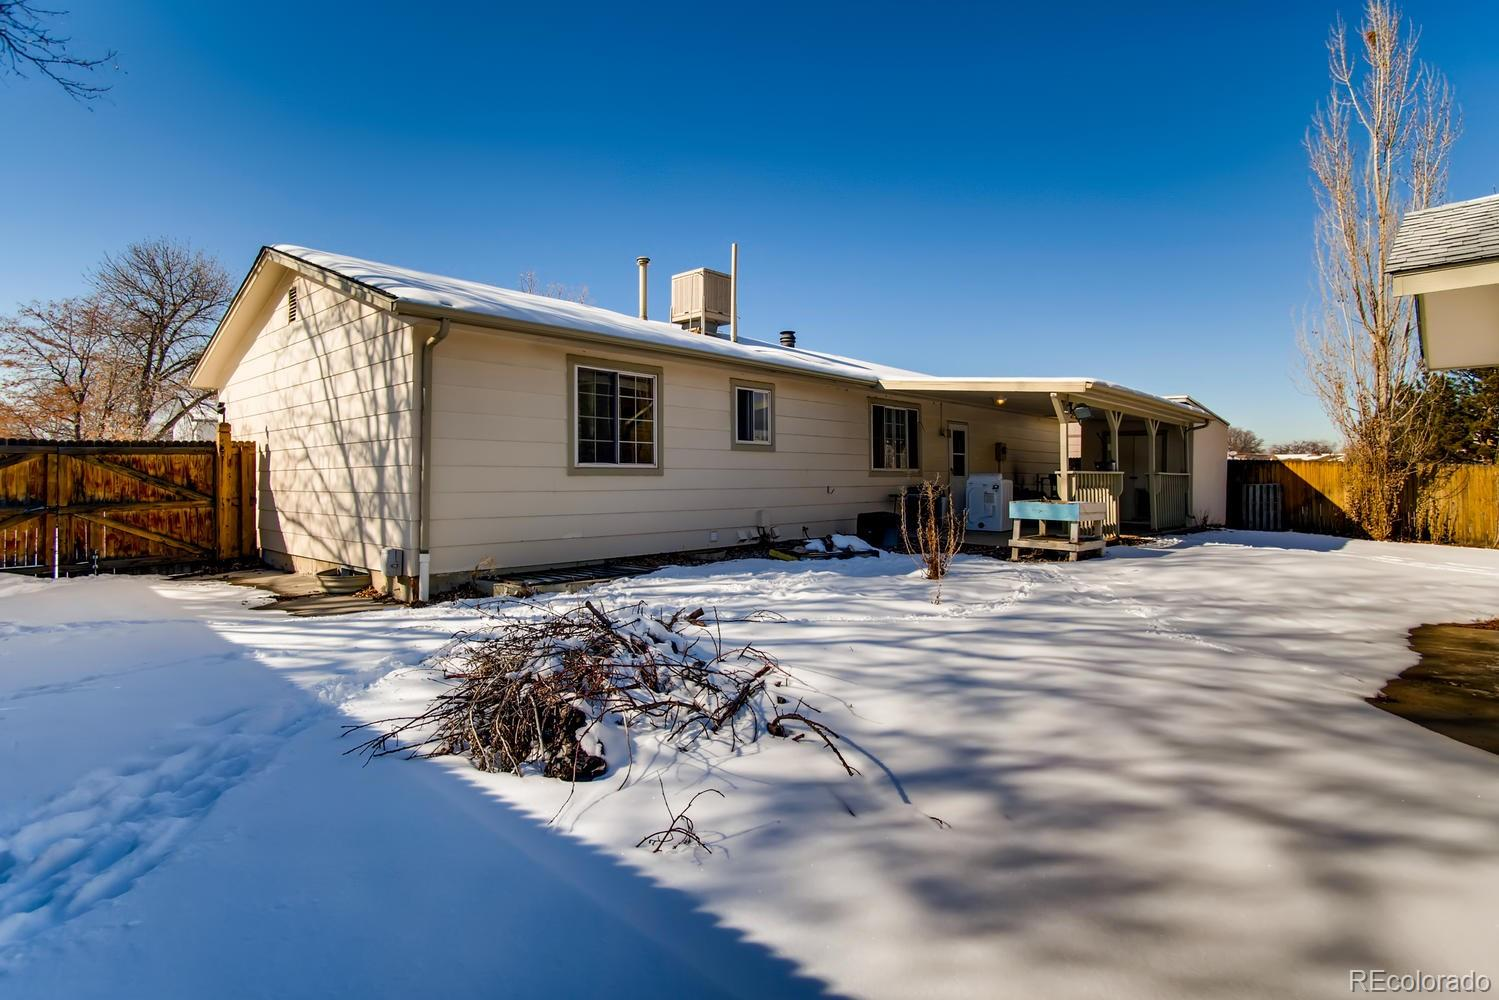 MLS# 7355353 - 27 - 3761 E 89th Place, Thornton, CO 80229